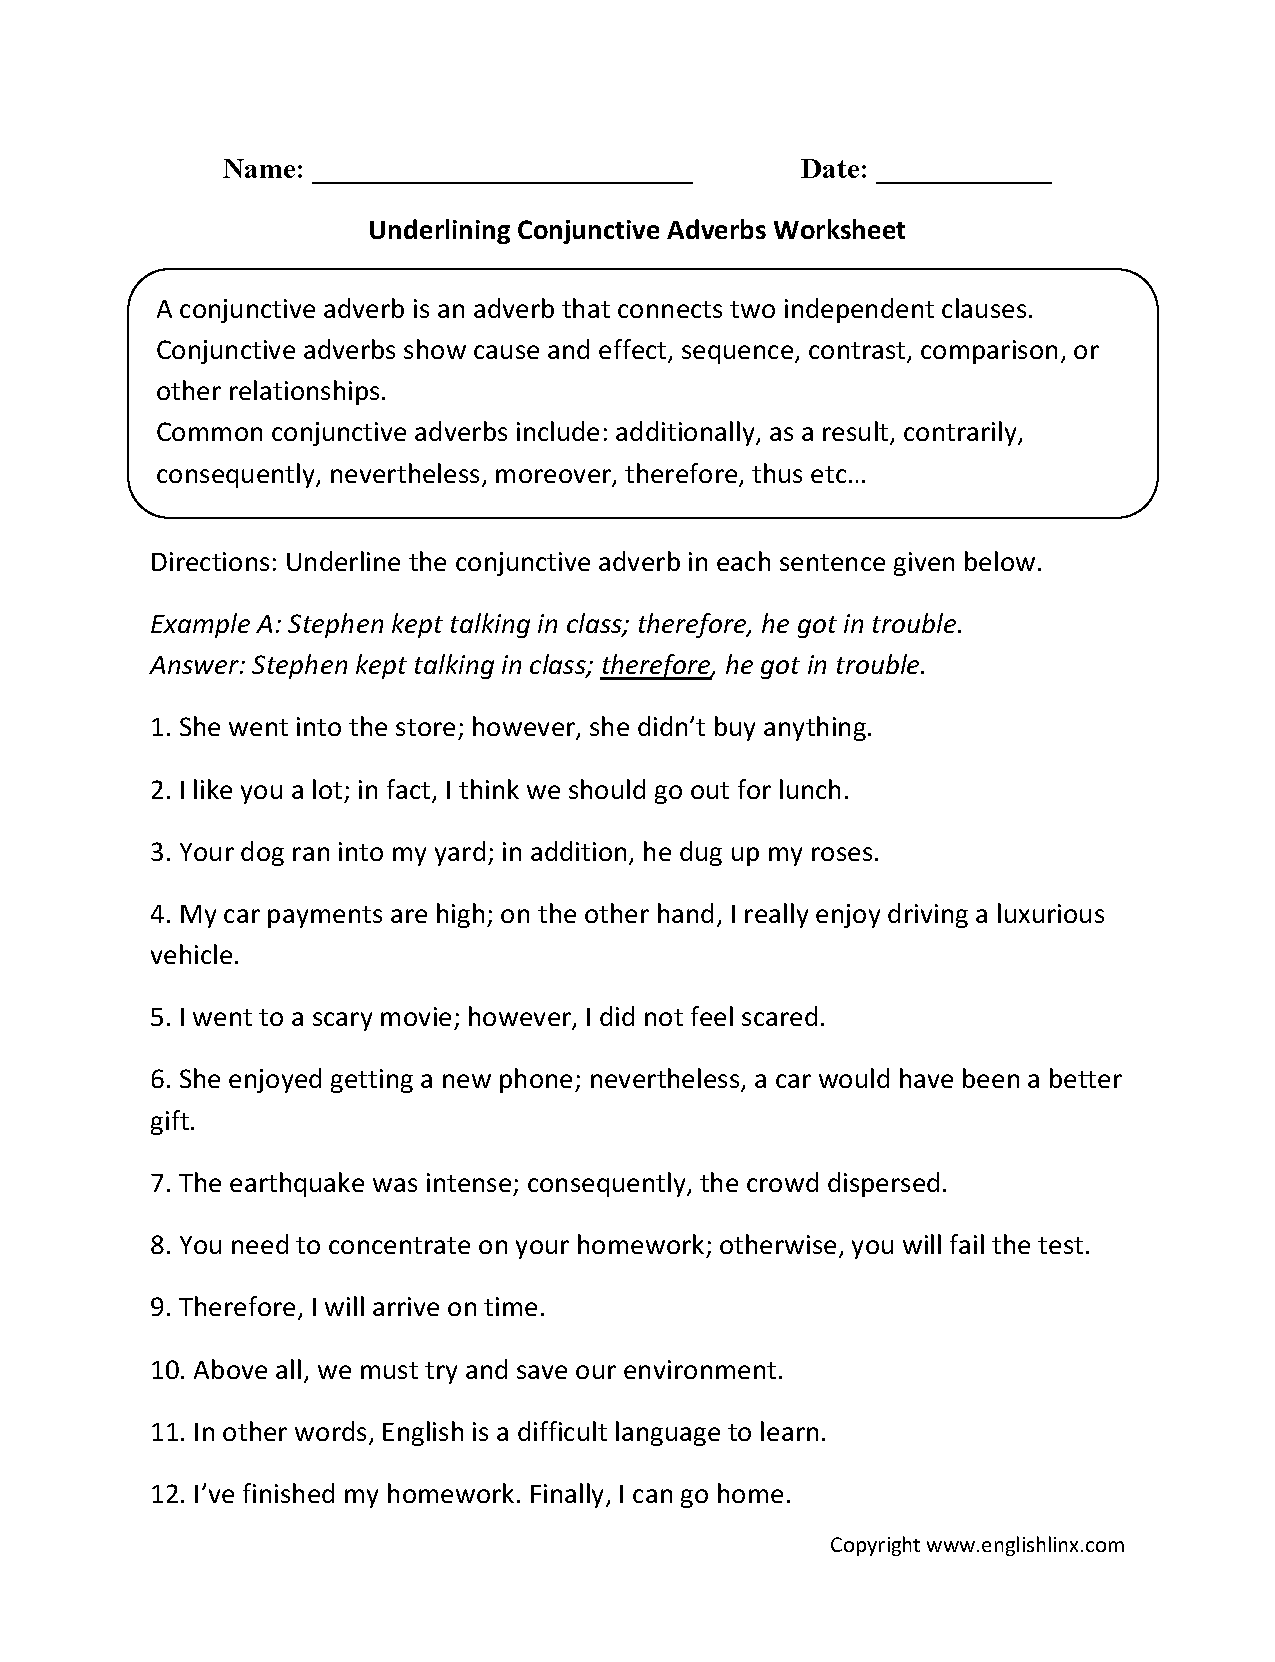 Weirdmailus  Marvellous Englishlinxcom  Conjunctions Worksheets With Glamorous Worksheet With Easy On The Eye Figures Of Speech Worksheet Also Time To The Half Hour And Quarter Hour Worksheets In Addition Types Of Plate Boundaries Worksheet And Multiplication And Division Worksheet As Well As Science Graphing Worksheets Additionally Science Worksheets Th Grade From Englishlinxcom With Weirdmailus  Glamorous Englishlinxcom  Conjunctions Worksheets With Easy On The Eye Worksheet And Marvellous Figures Of Speech Worksheet Also Time To The Half Hour And Quarter Hour Worksheets In Addition Types Of Plate Boundaries Worksheet From Englishlinxcom